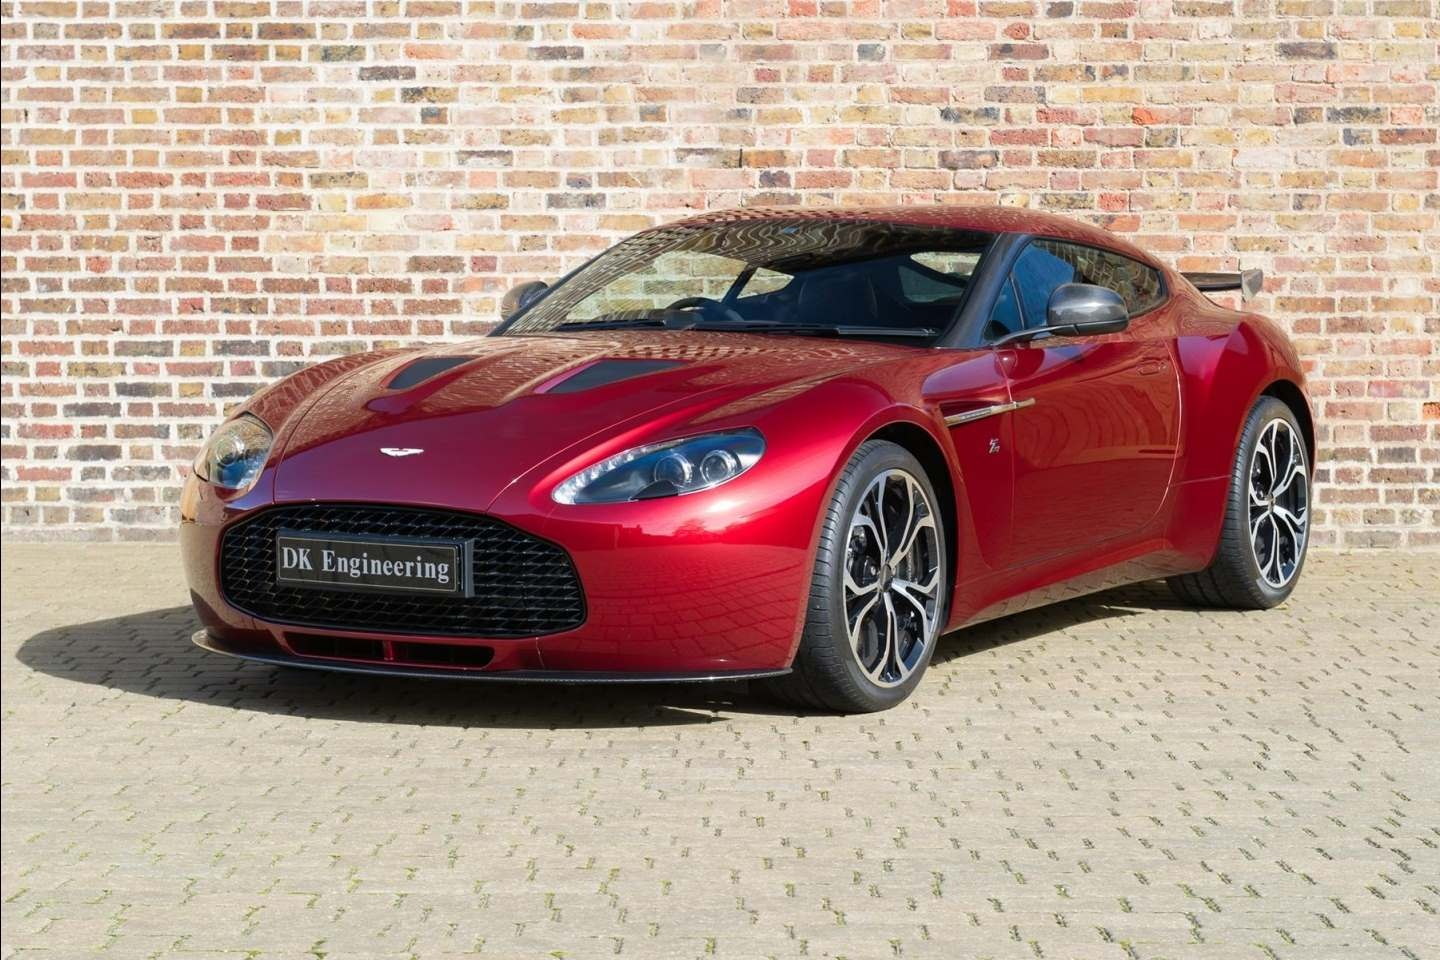 aston martin v12 vantage zagato for sale - vehicle sales - dk